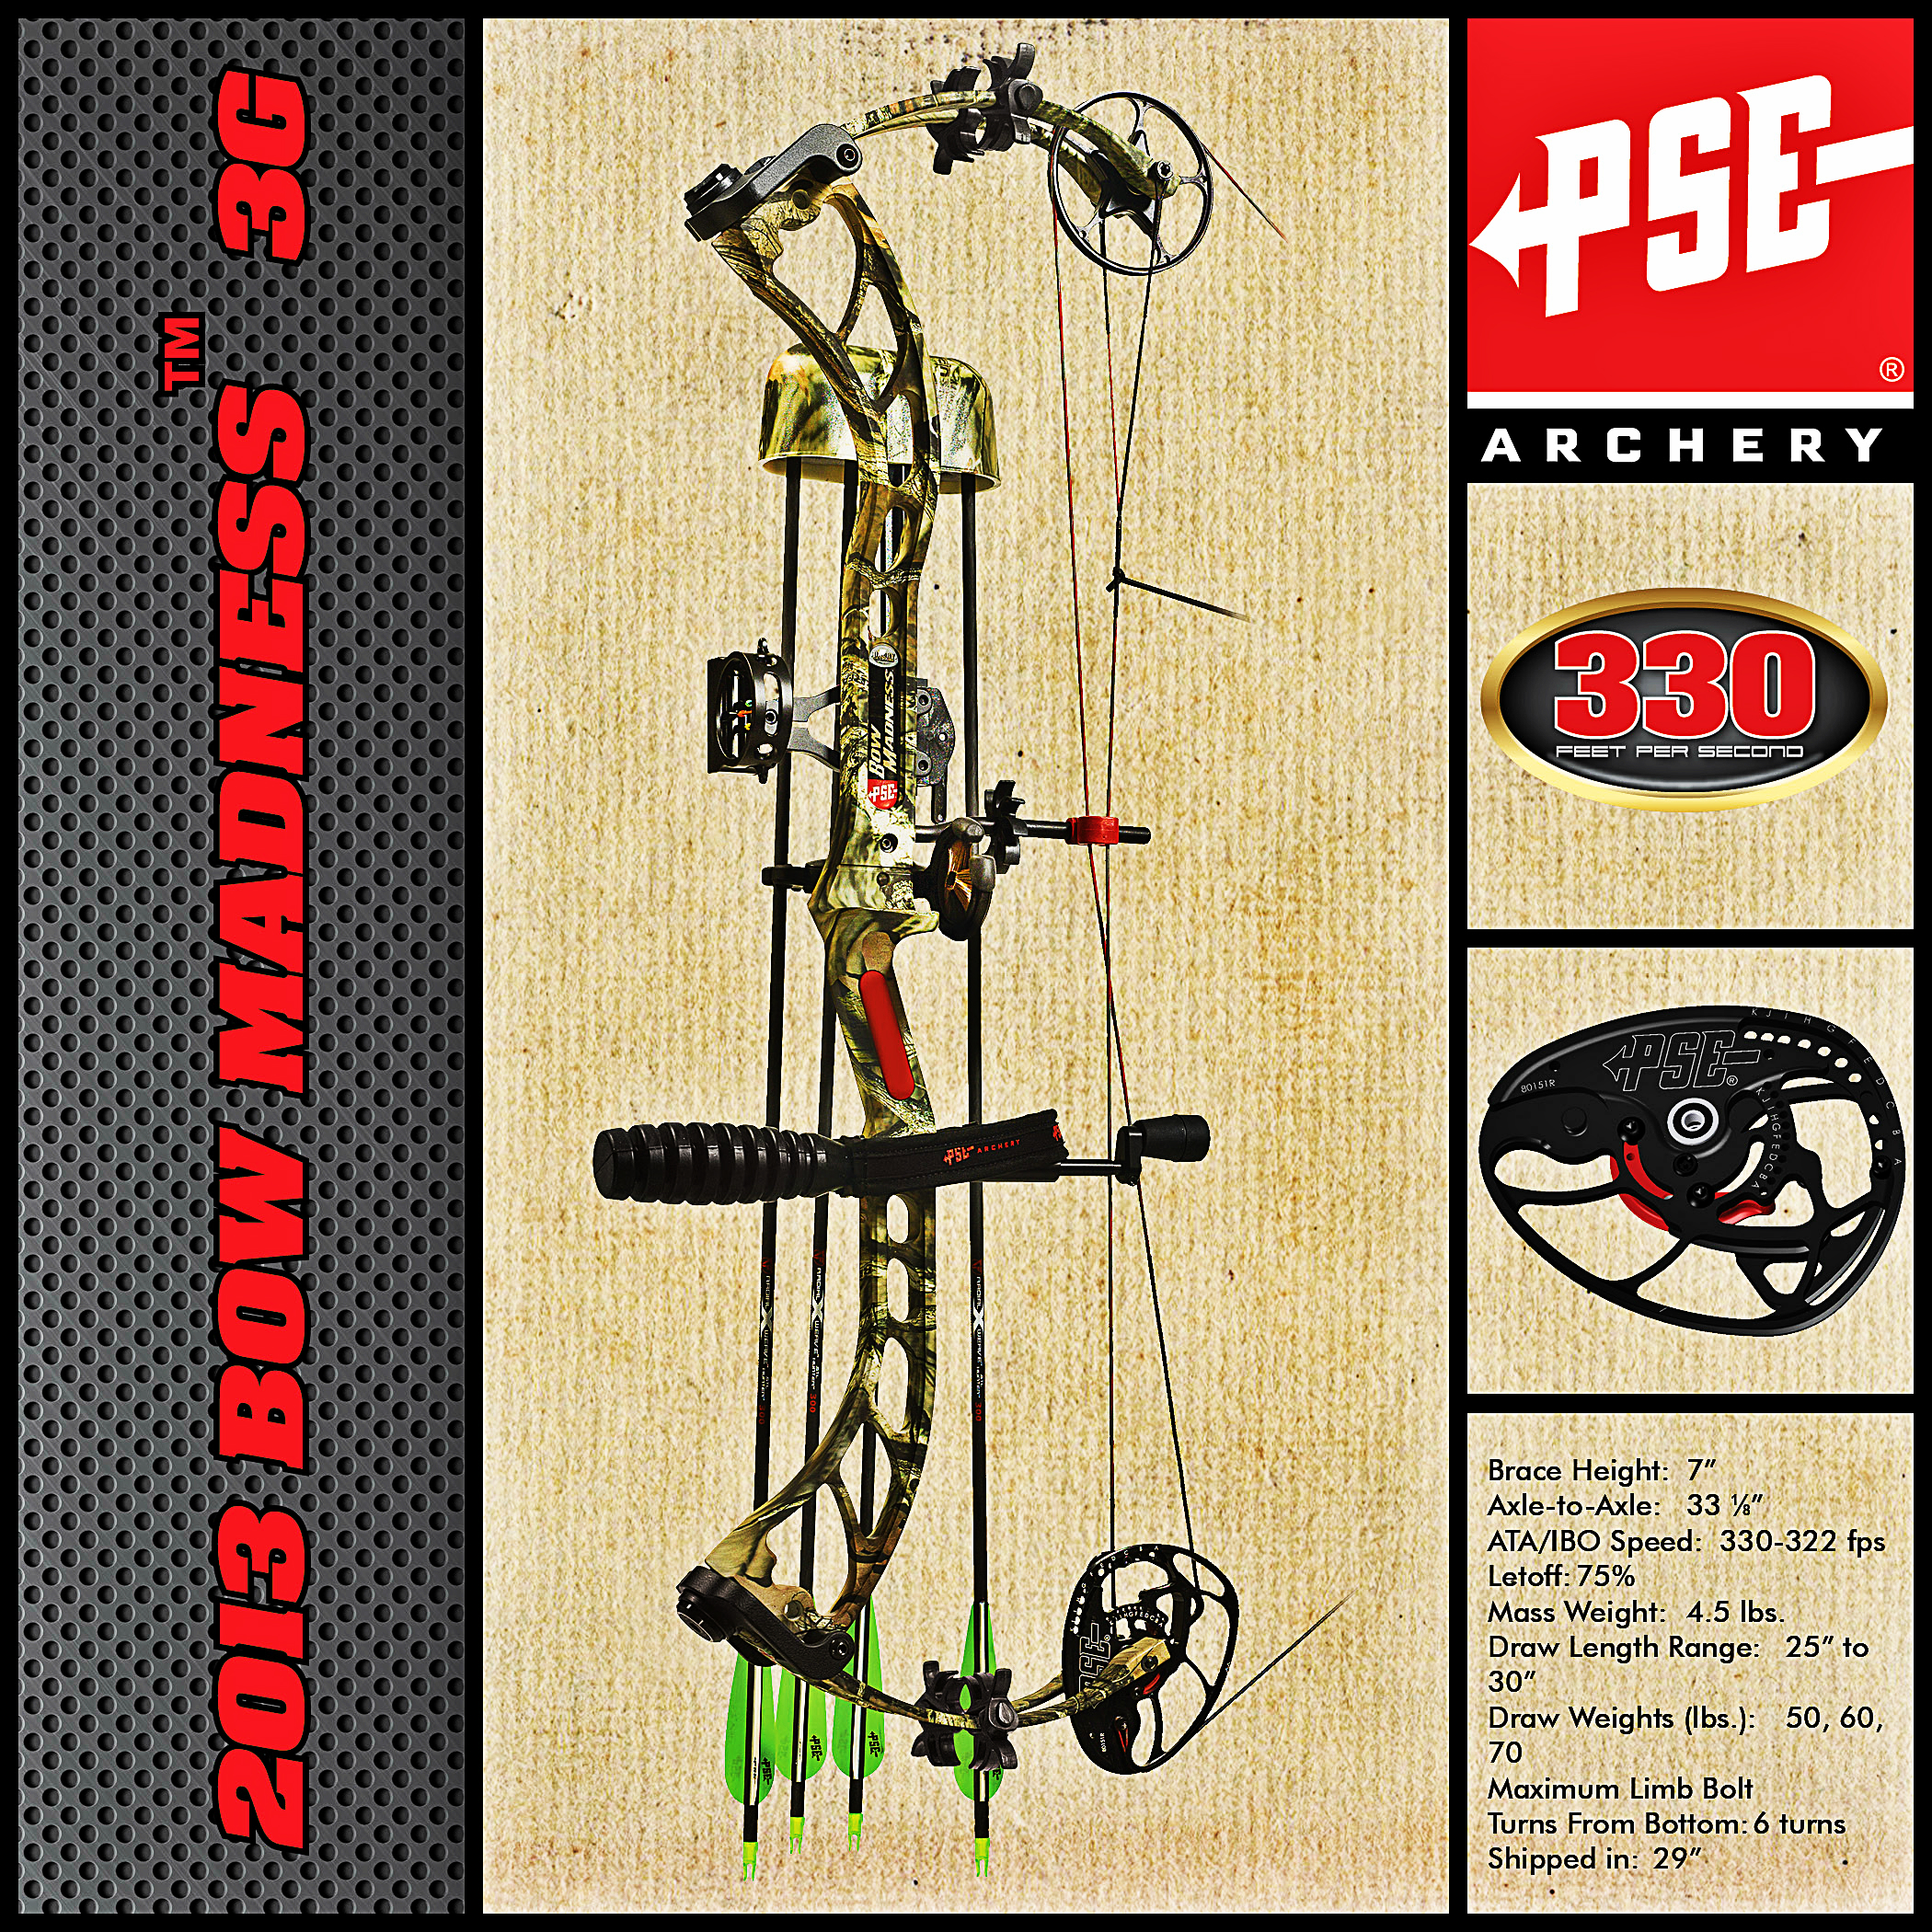 in a New Generation of Performance with the 2013 PSE Bow Madness 3G